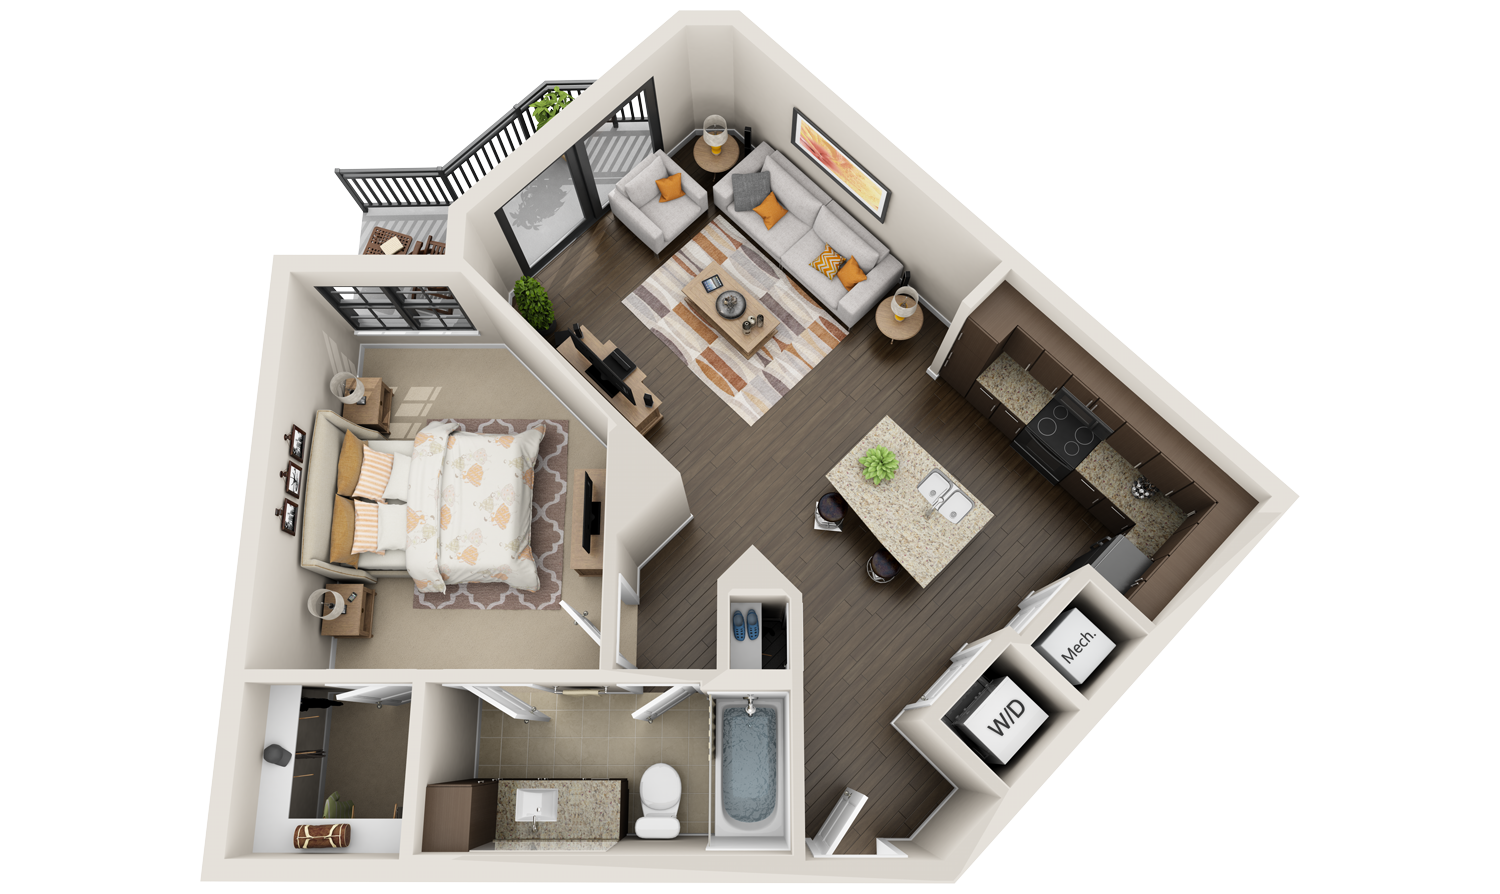 3d floor plans for apartments that look real for 3d plans online